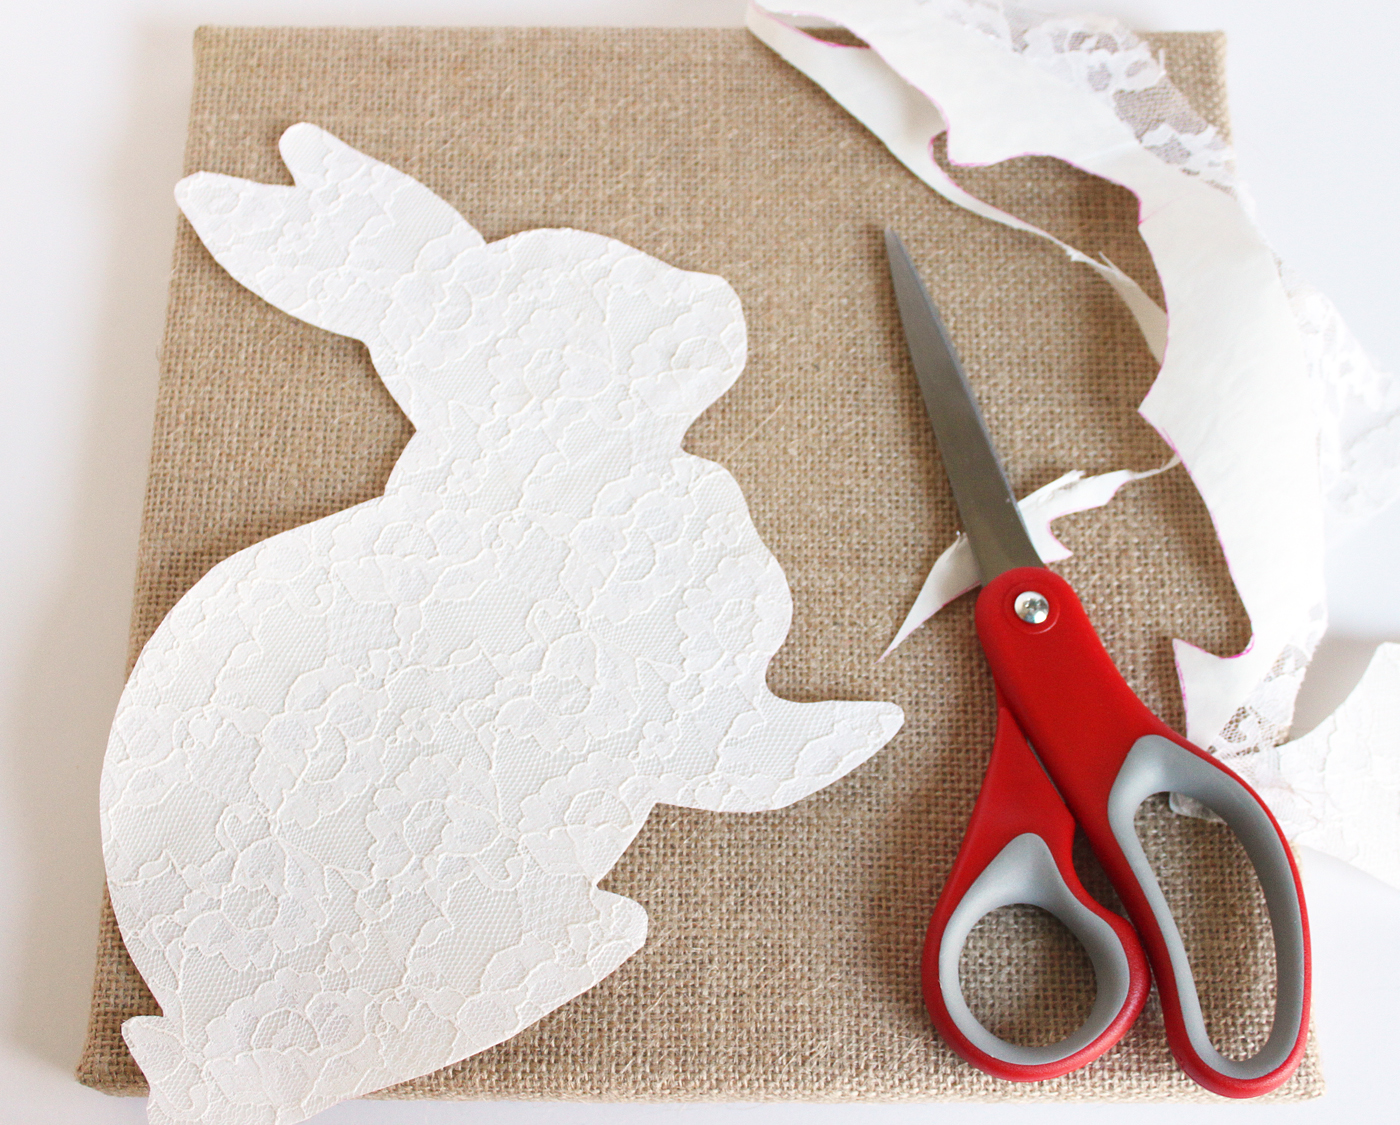 lace-bunny-easter-craft-05